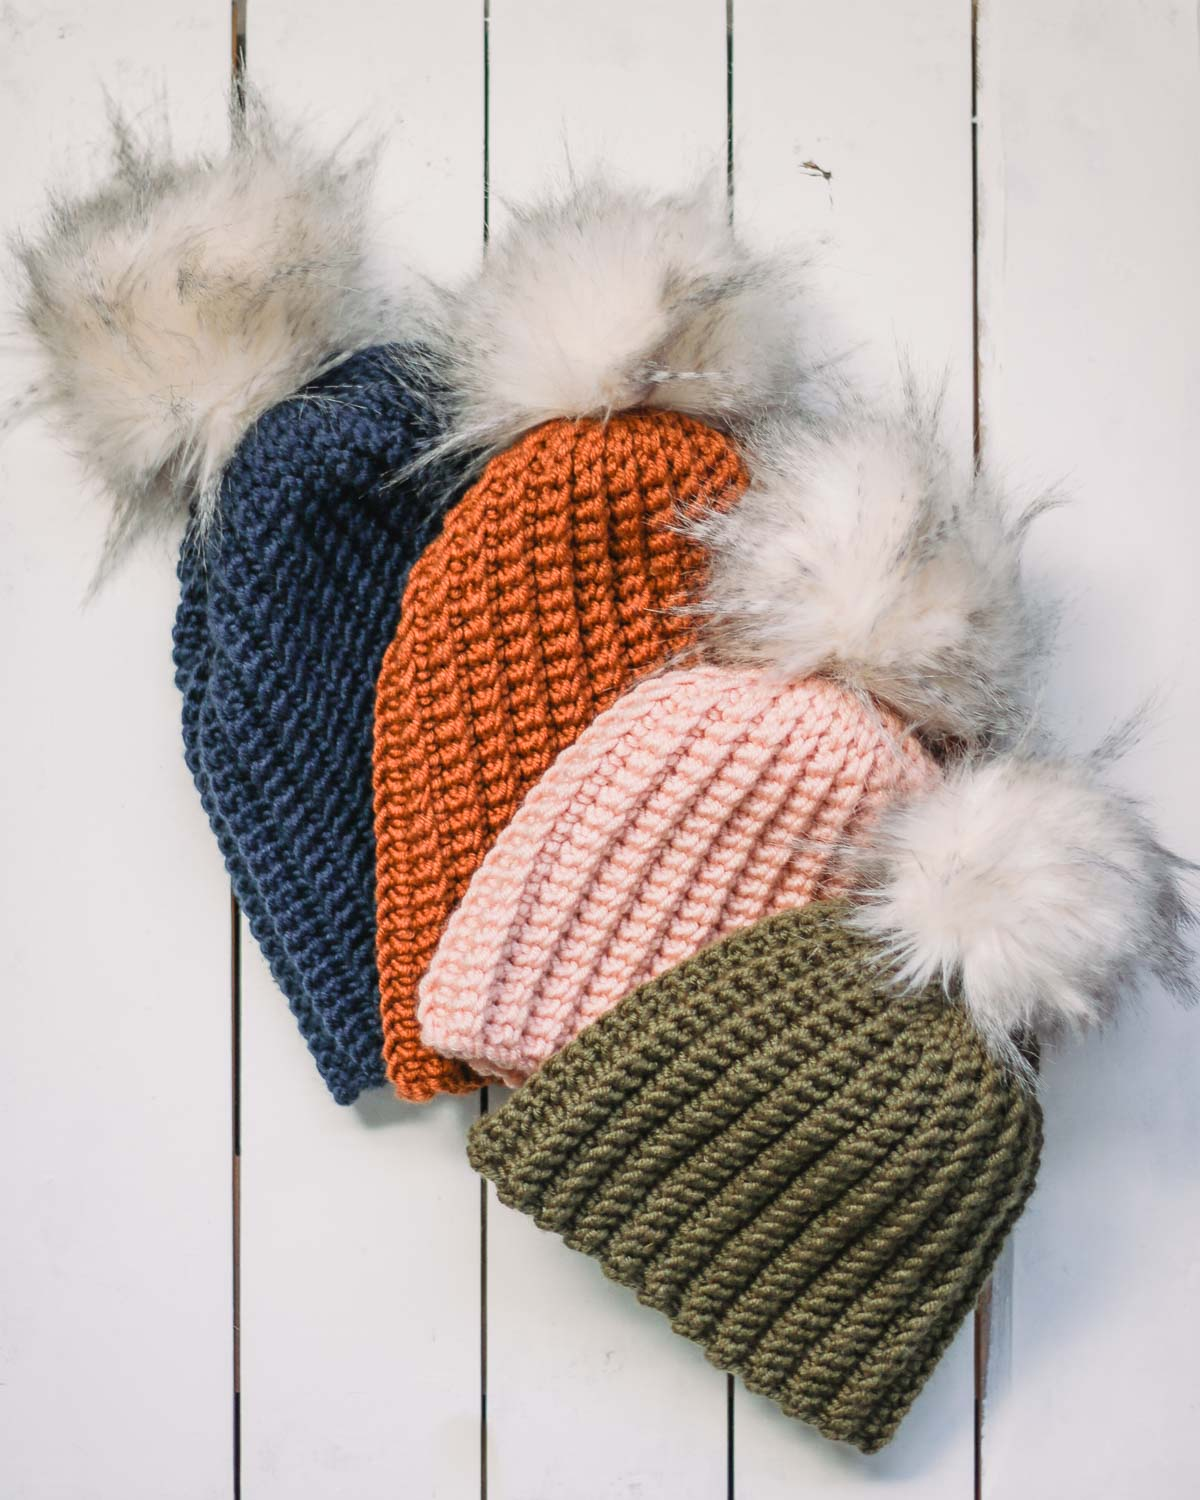 Four ribbed crochet beanies with fur pom poms laying on a white wood background. Hats in sizes baby-adult.